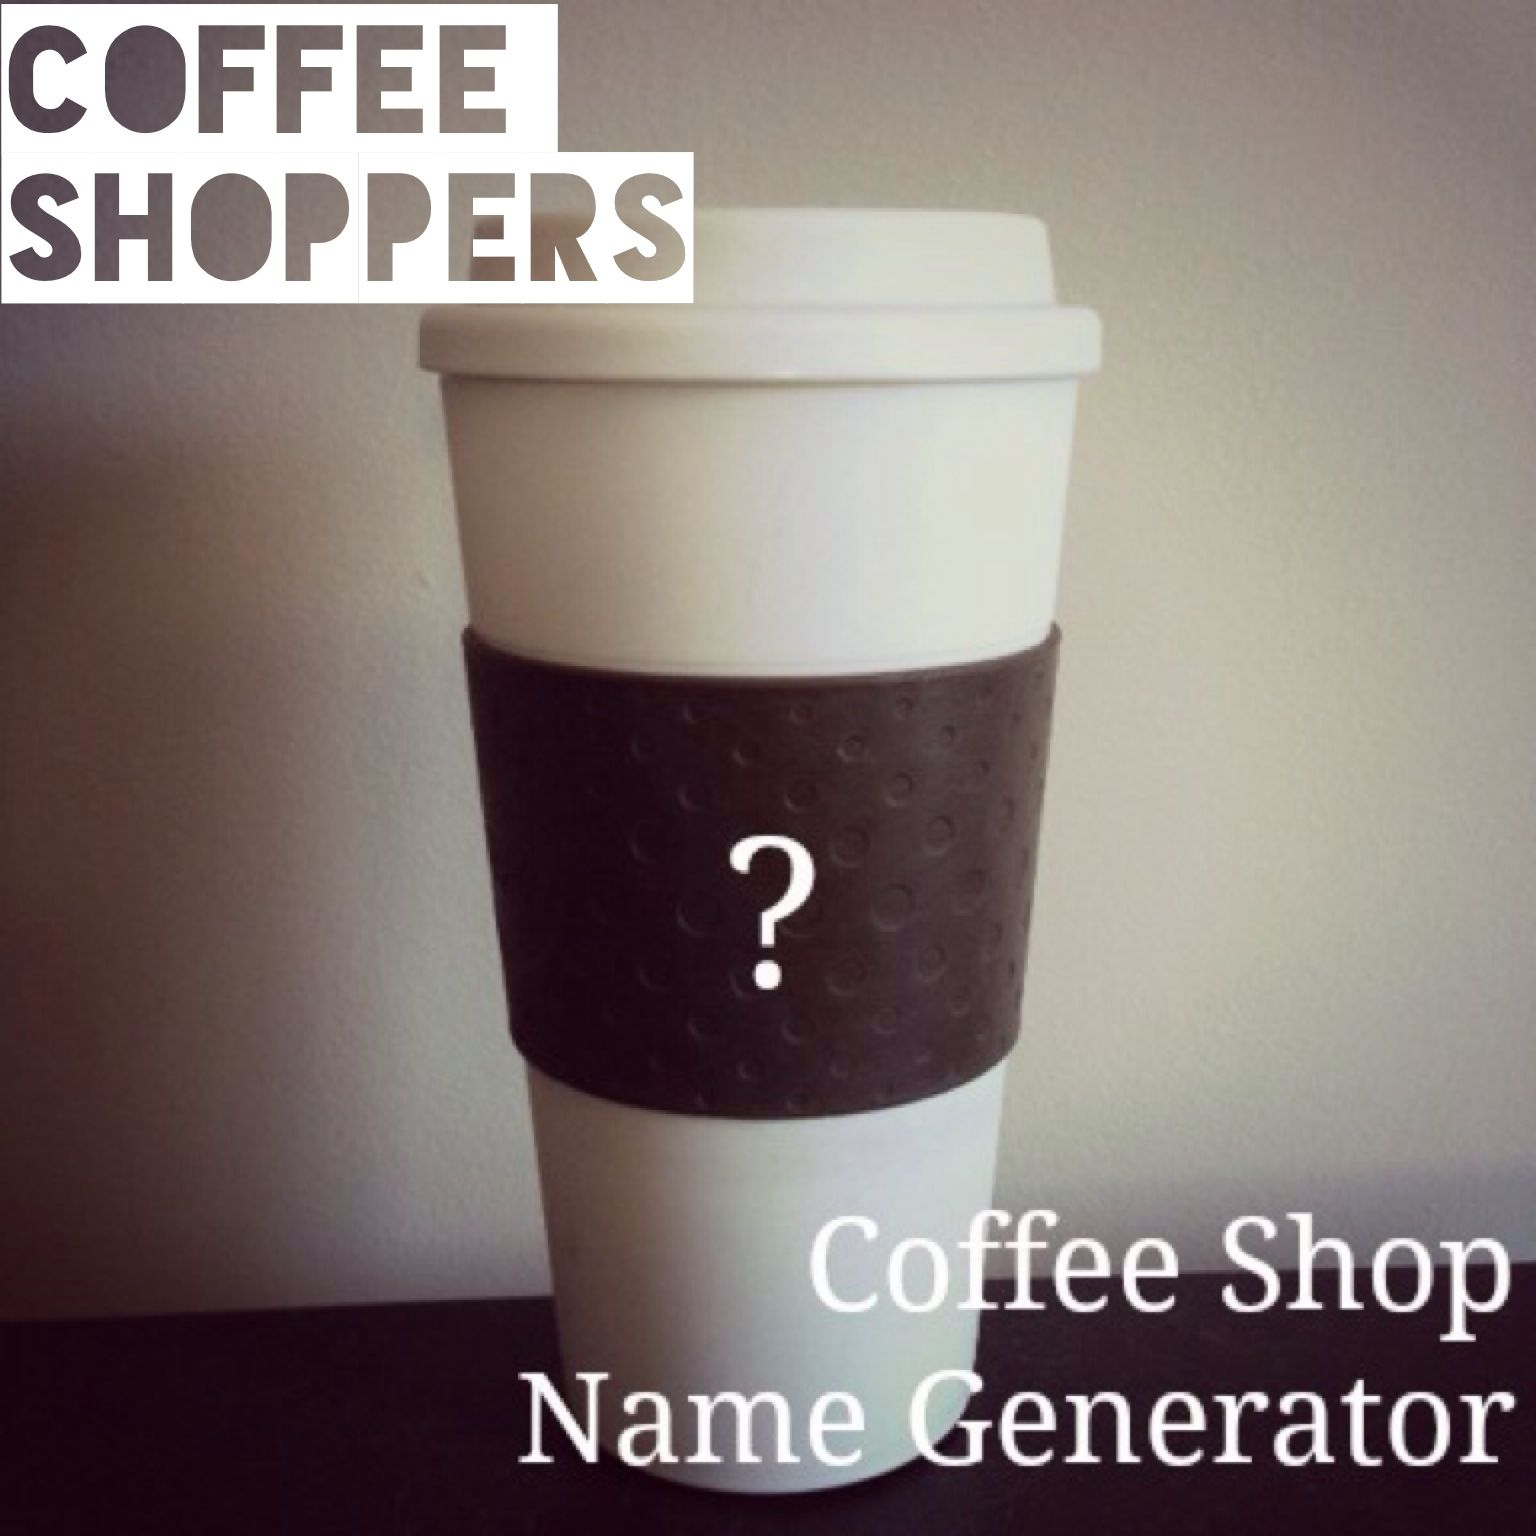 Coffee Shop Name Generator Coffee Shoppers Posts Pinterest